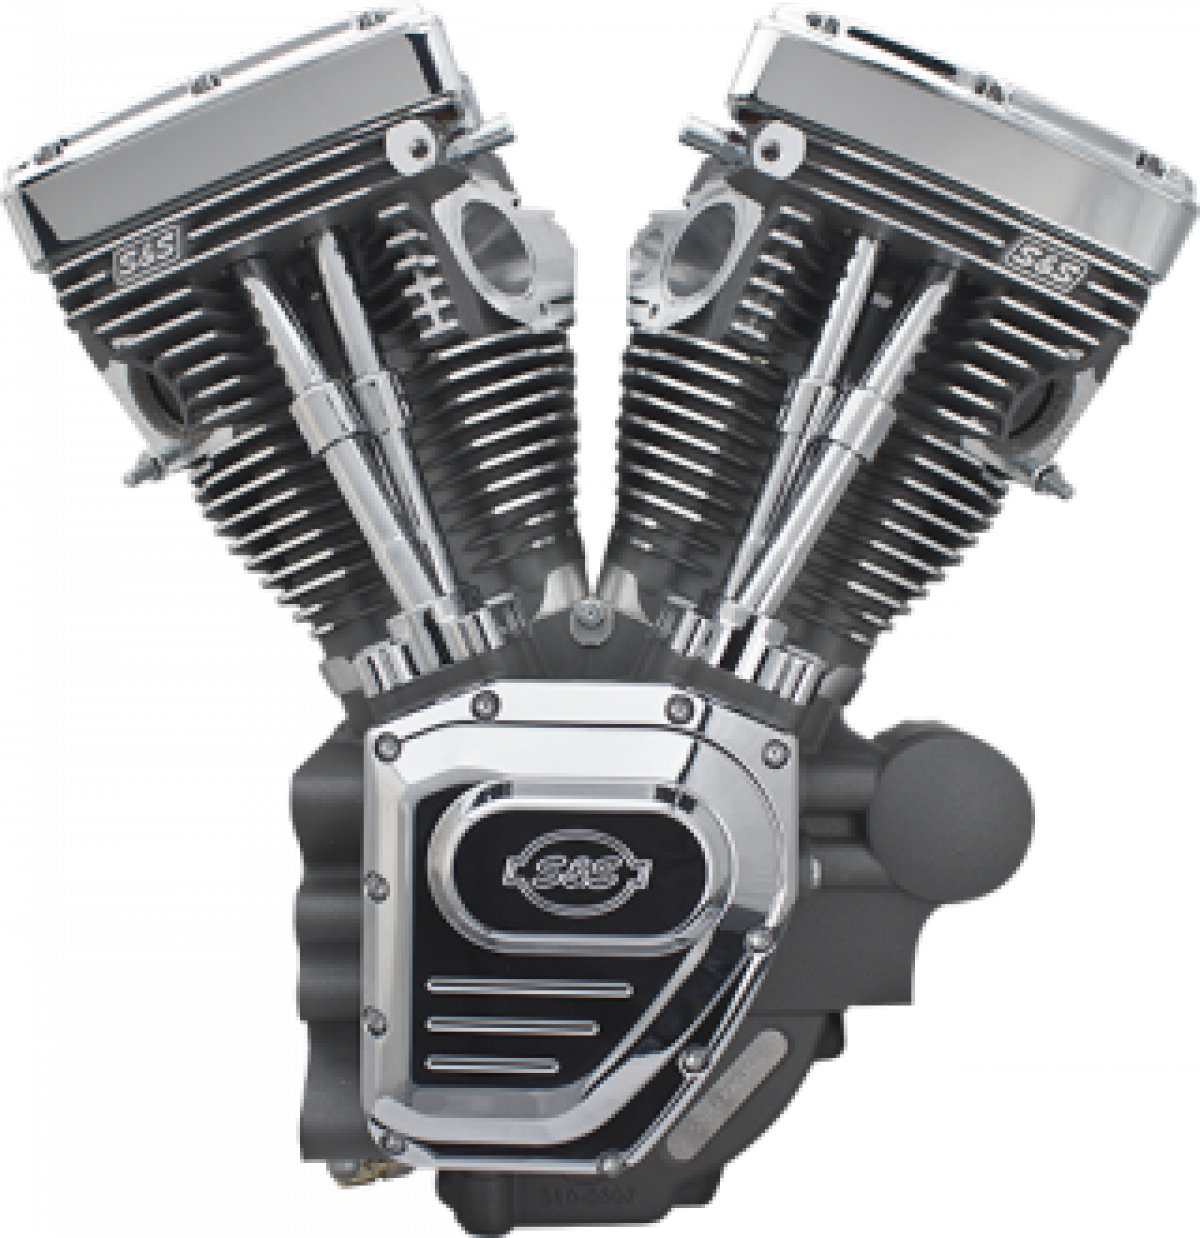 motorcycle engine png